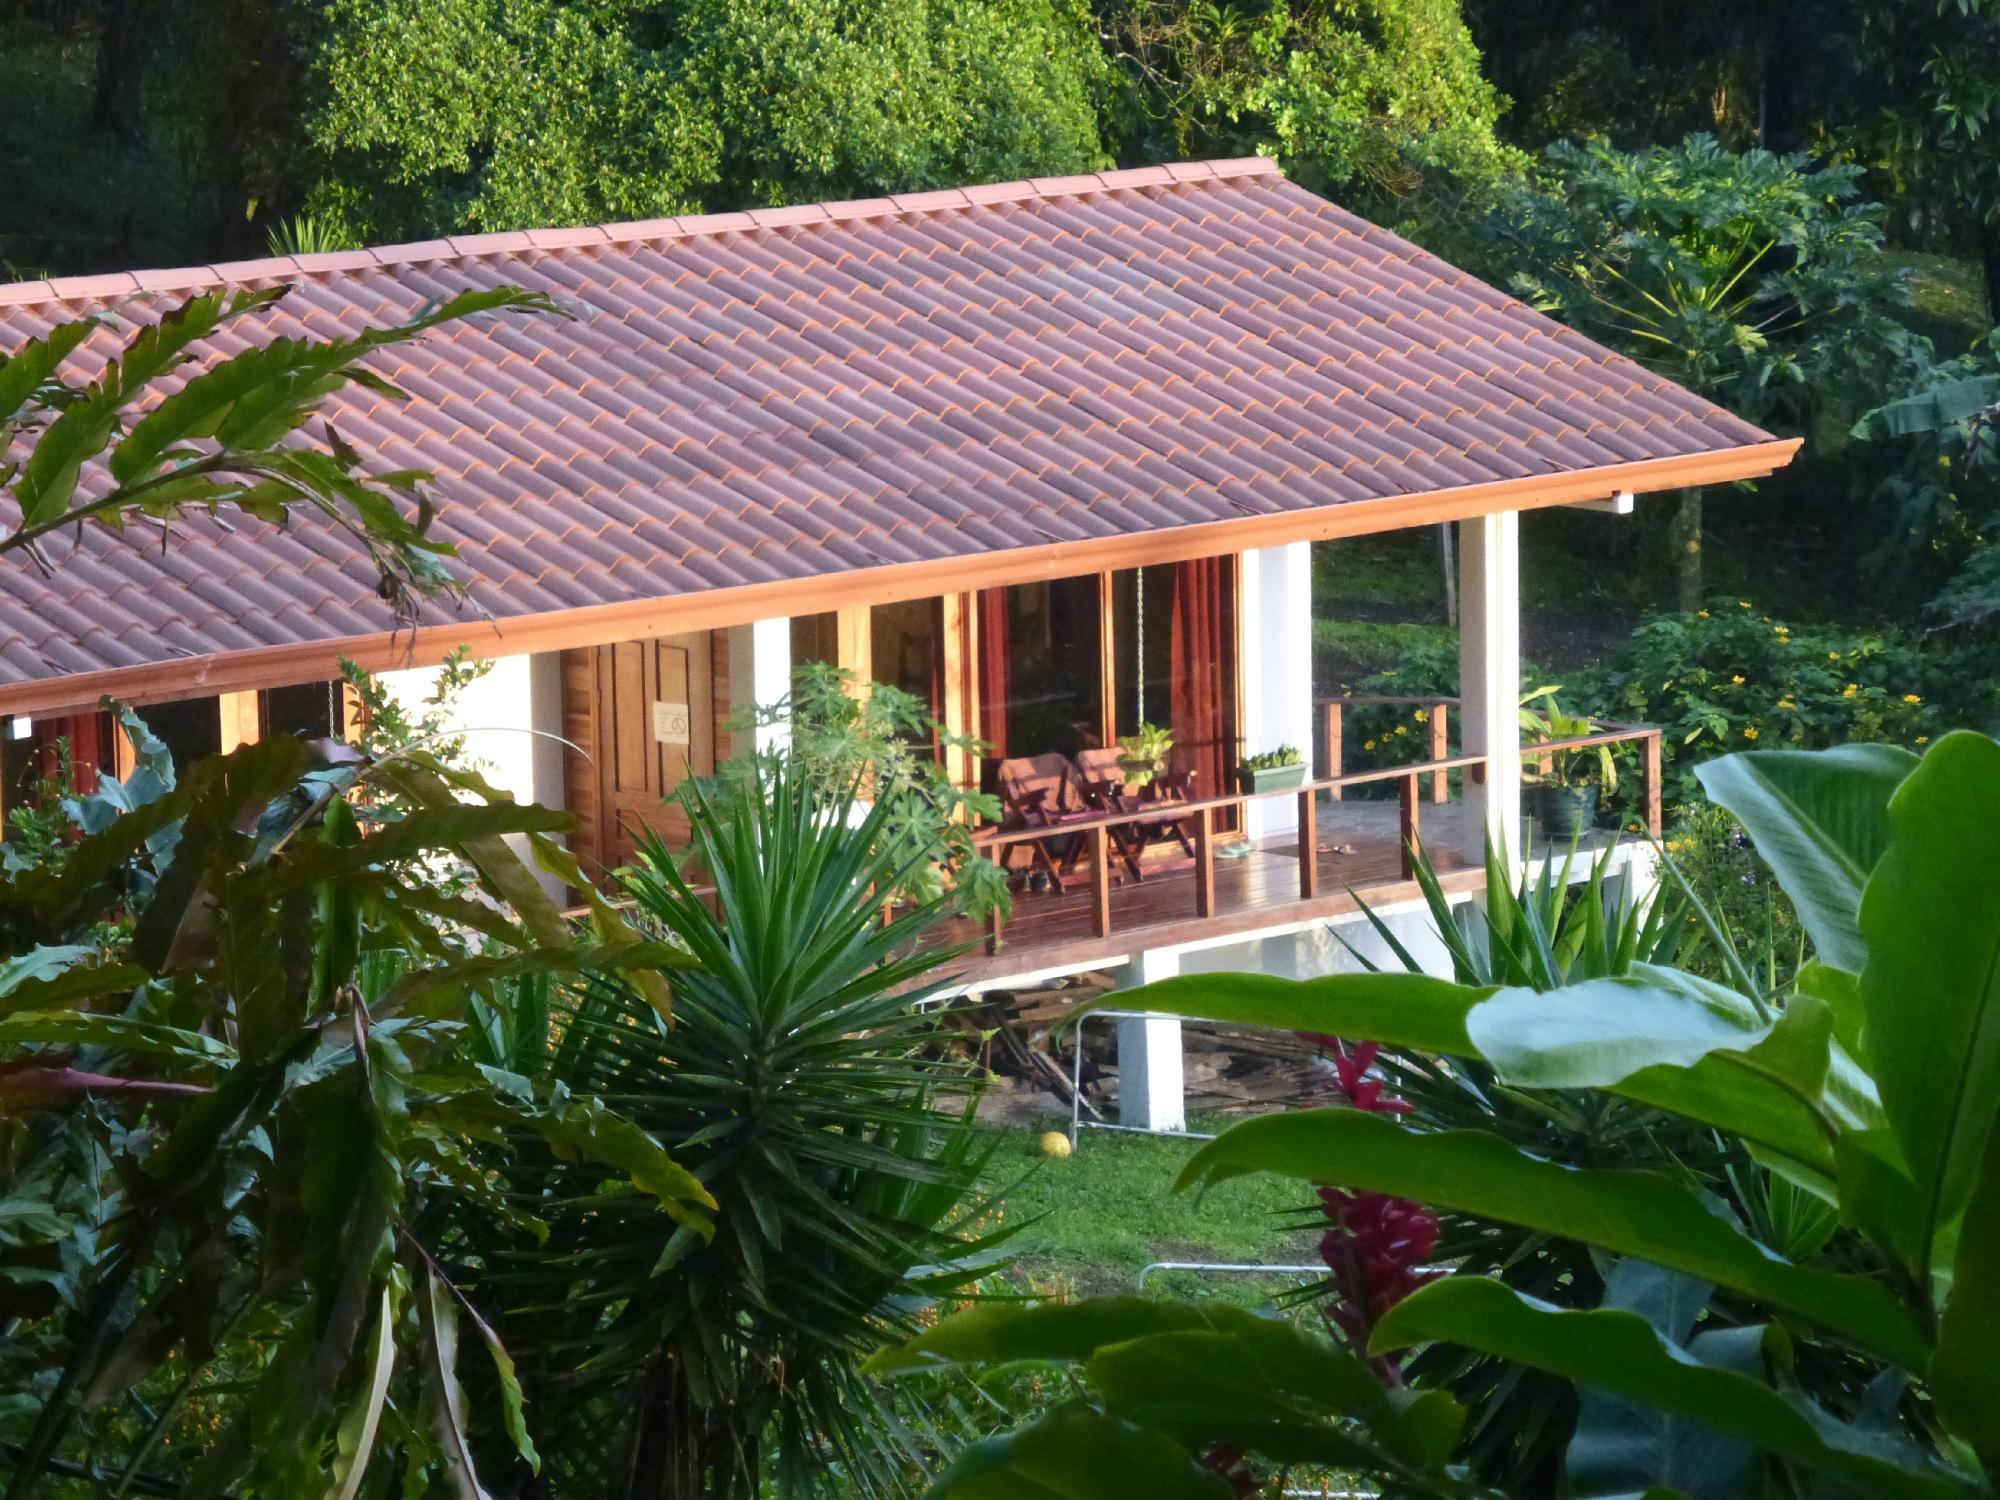 La Ceiba Tree Lodge